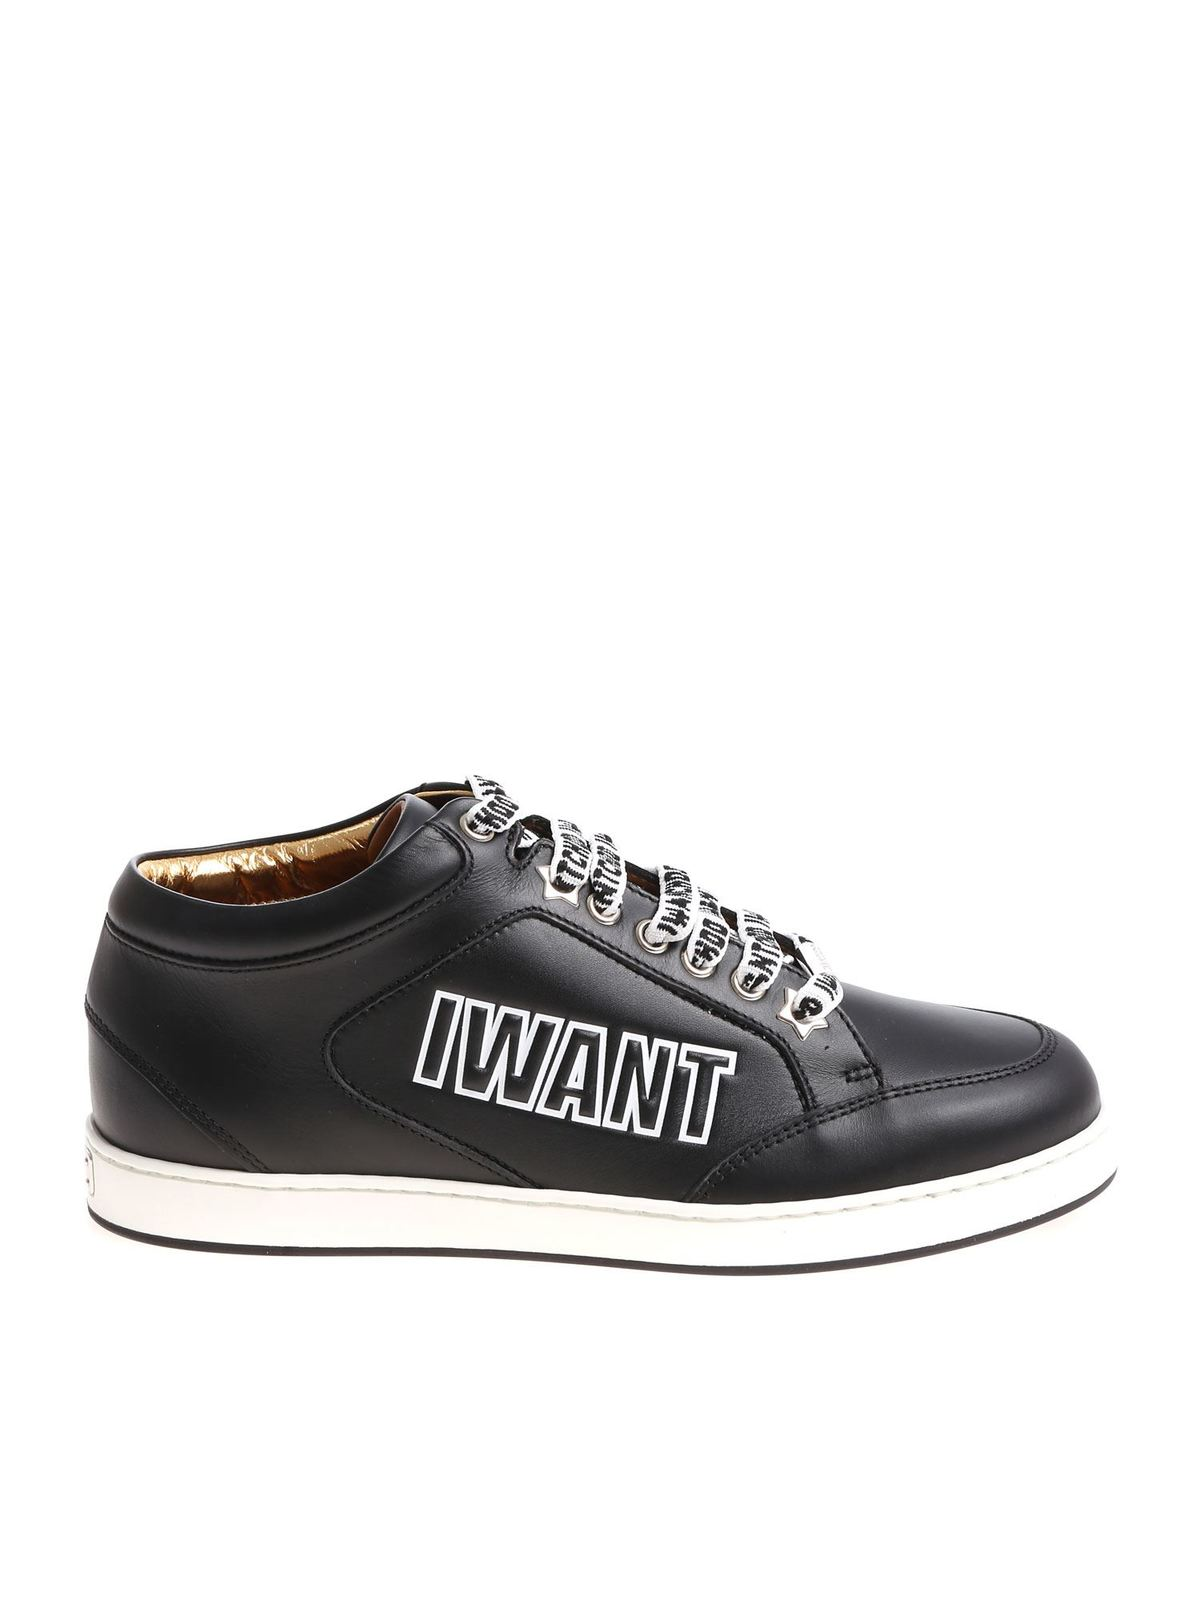 Black Miami sneakers with branded laces